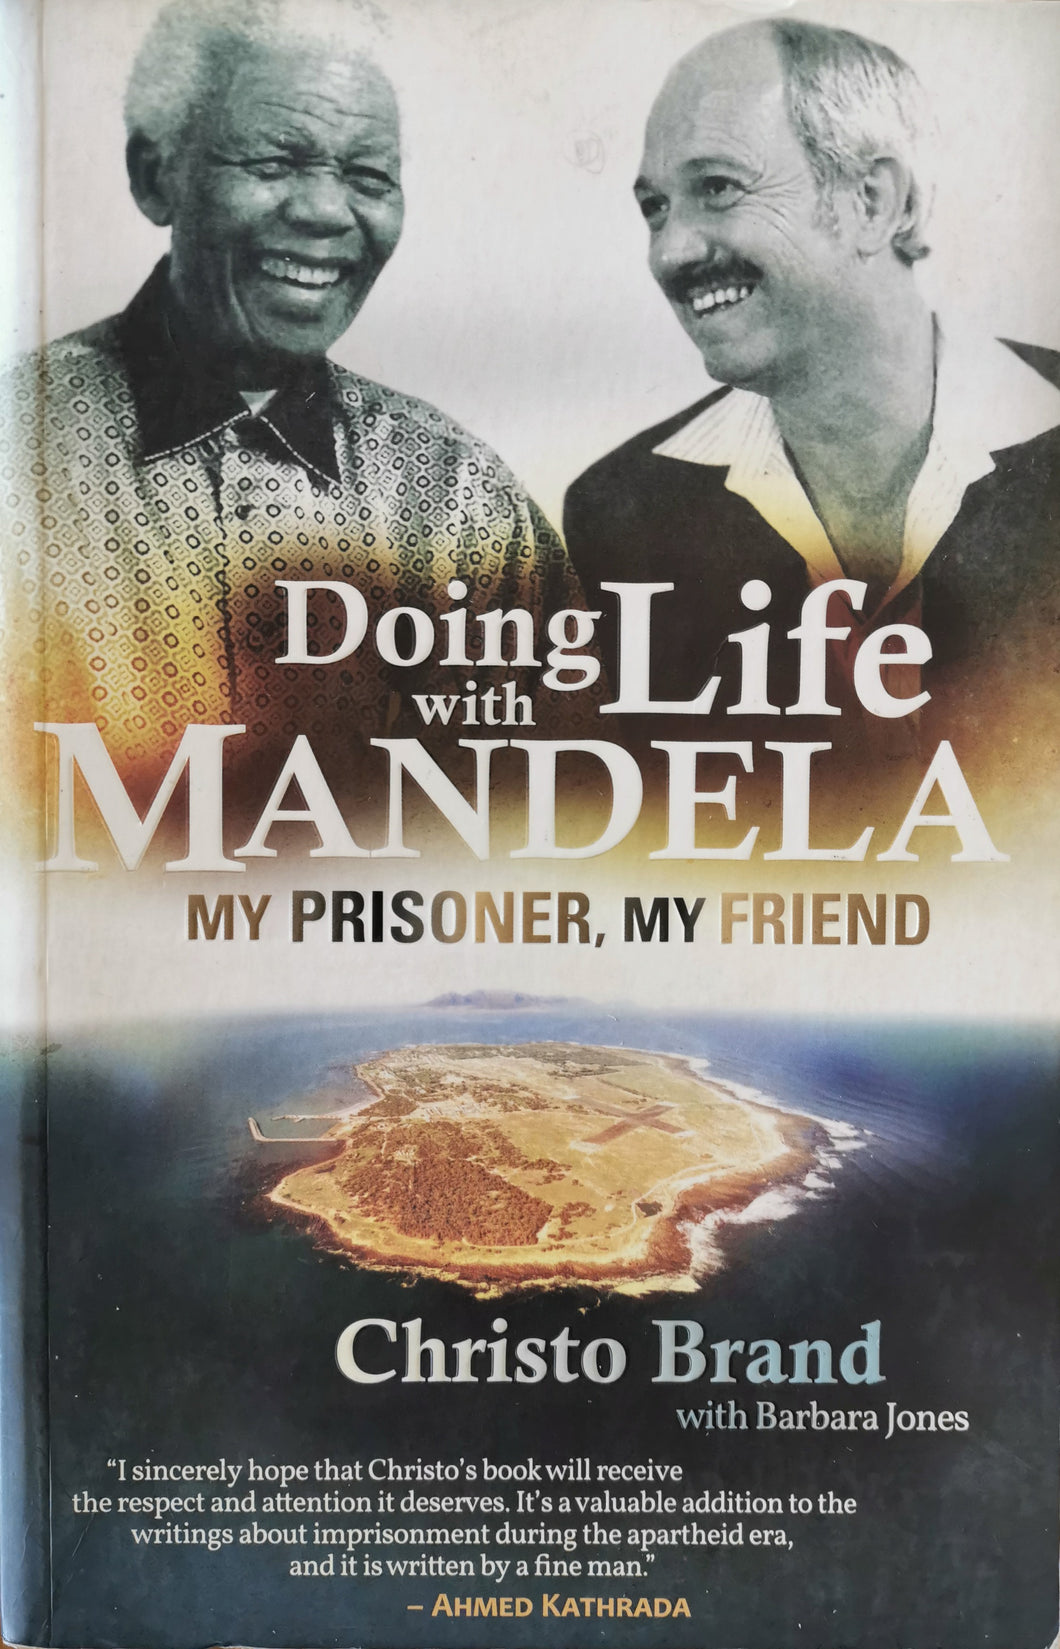 Doing Life with Mandela: My Prisoner, My Friend by Christo Brand